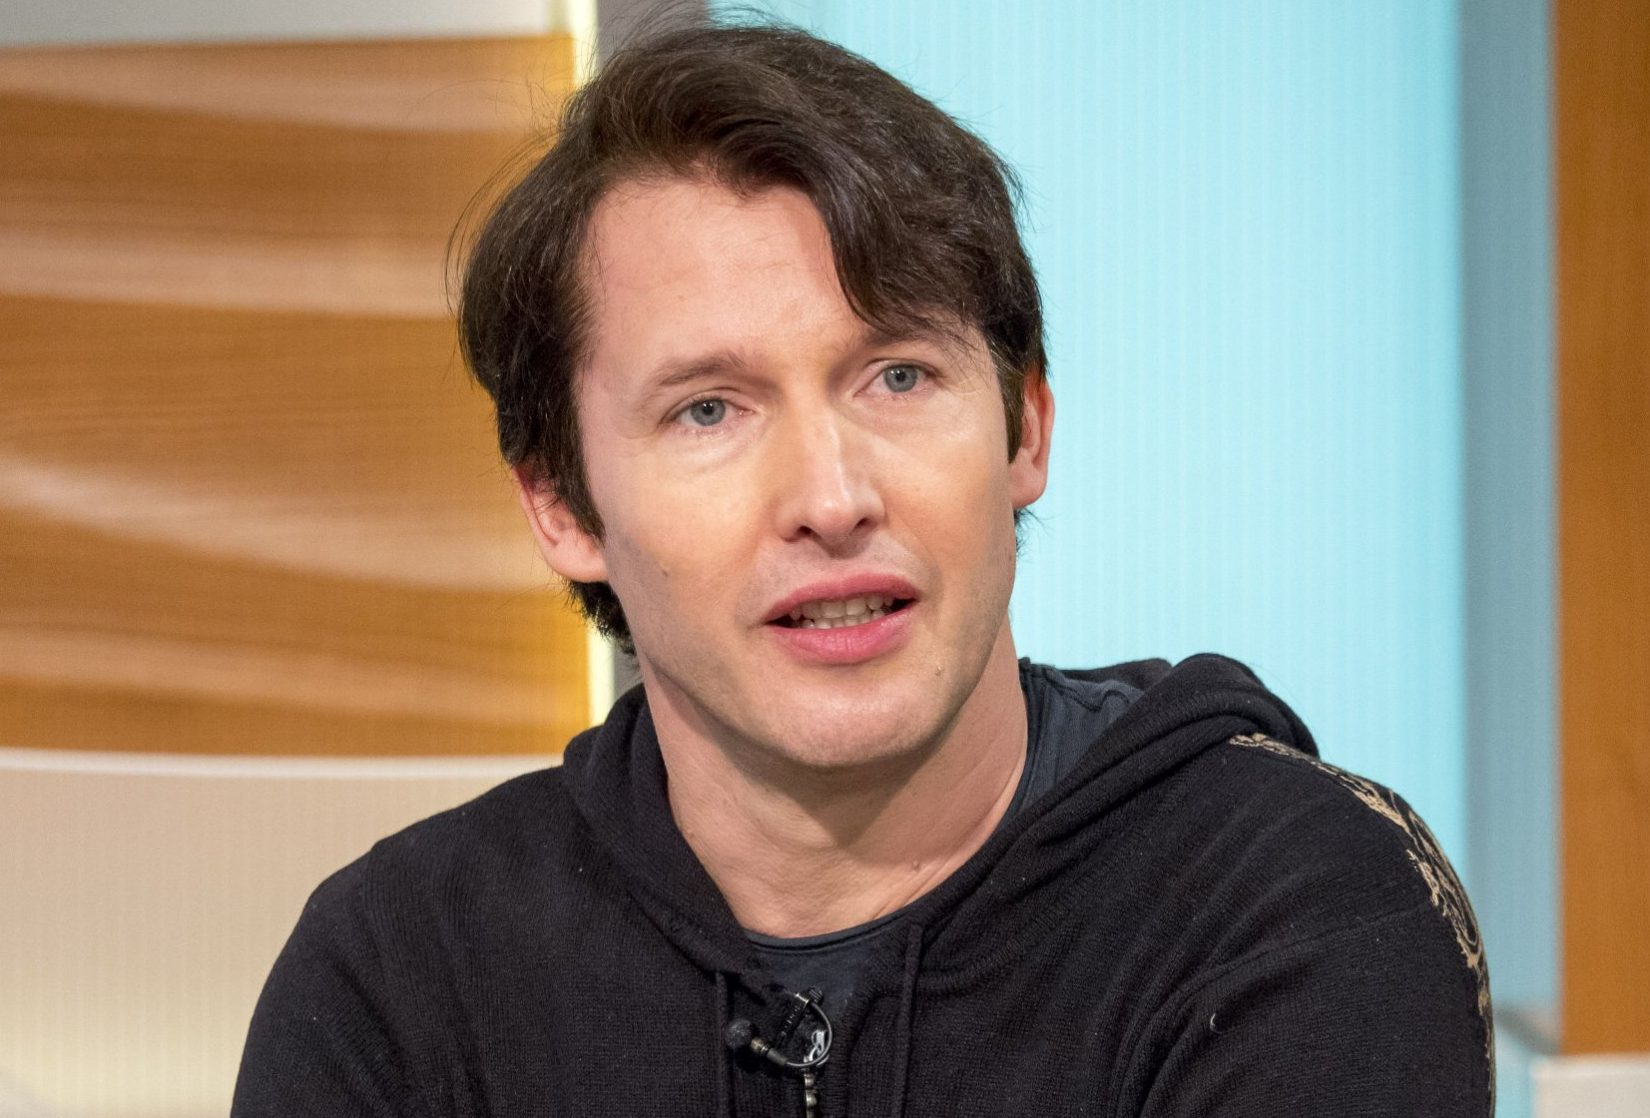 EDITORIAL USE ONLY. NO MERCHANDISING Mandatory Credit: Photo by Ken McKay/ITV/REX/Shutterstock (9279120g) James Blunt 'Good Morning Britain' TV show, London, UK - 12 Dec 2017 He's busked with Bear Grylls, is mates with the royals and has even served with Prince Harry... so will he be a guest at his wedding? James joins us for a rare chat before Christmas to promote his 5th album.